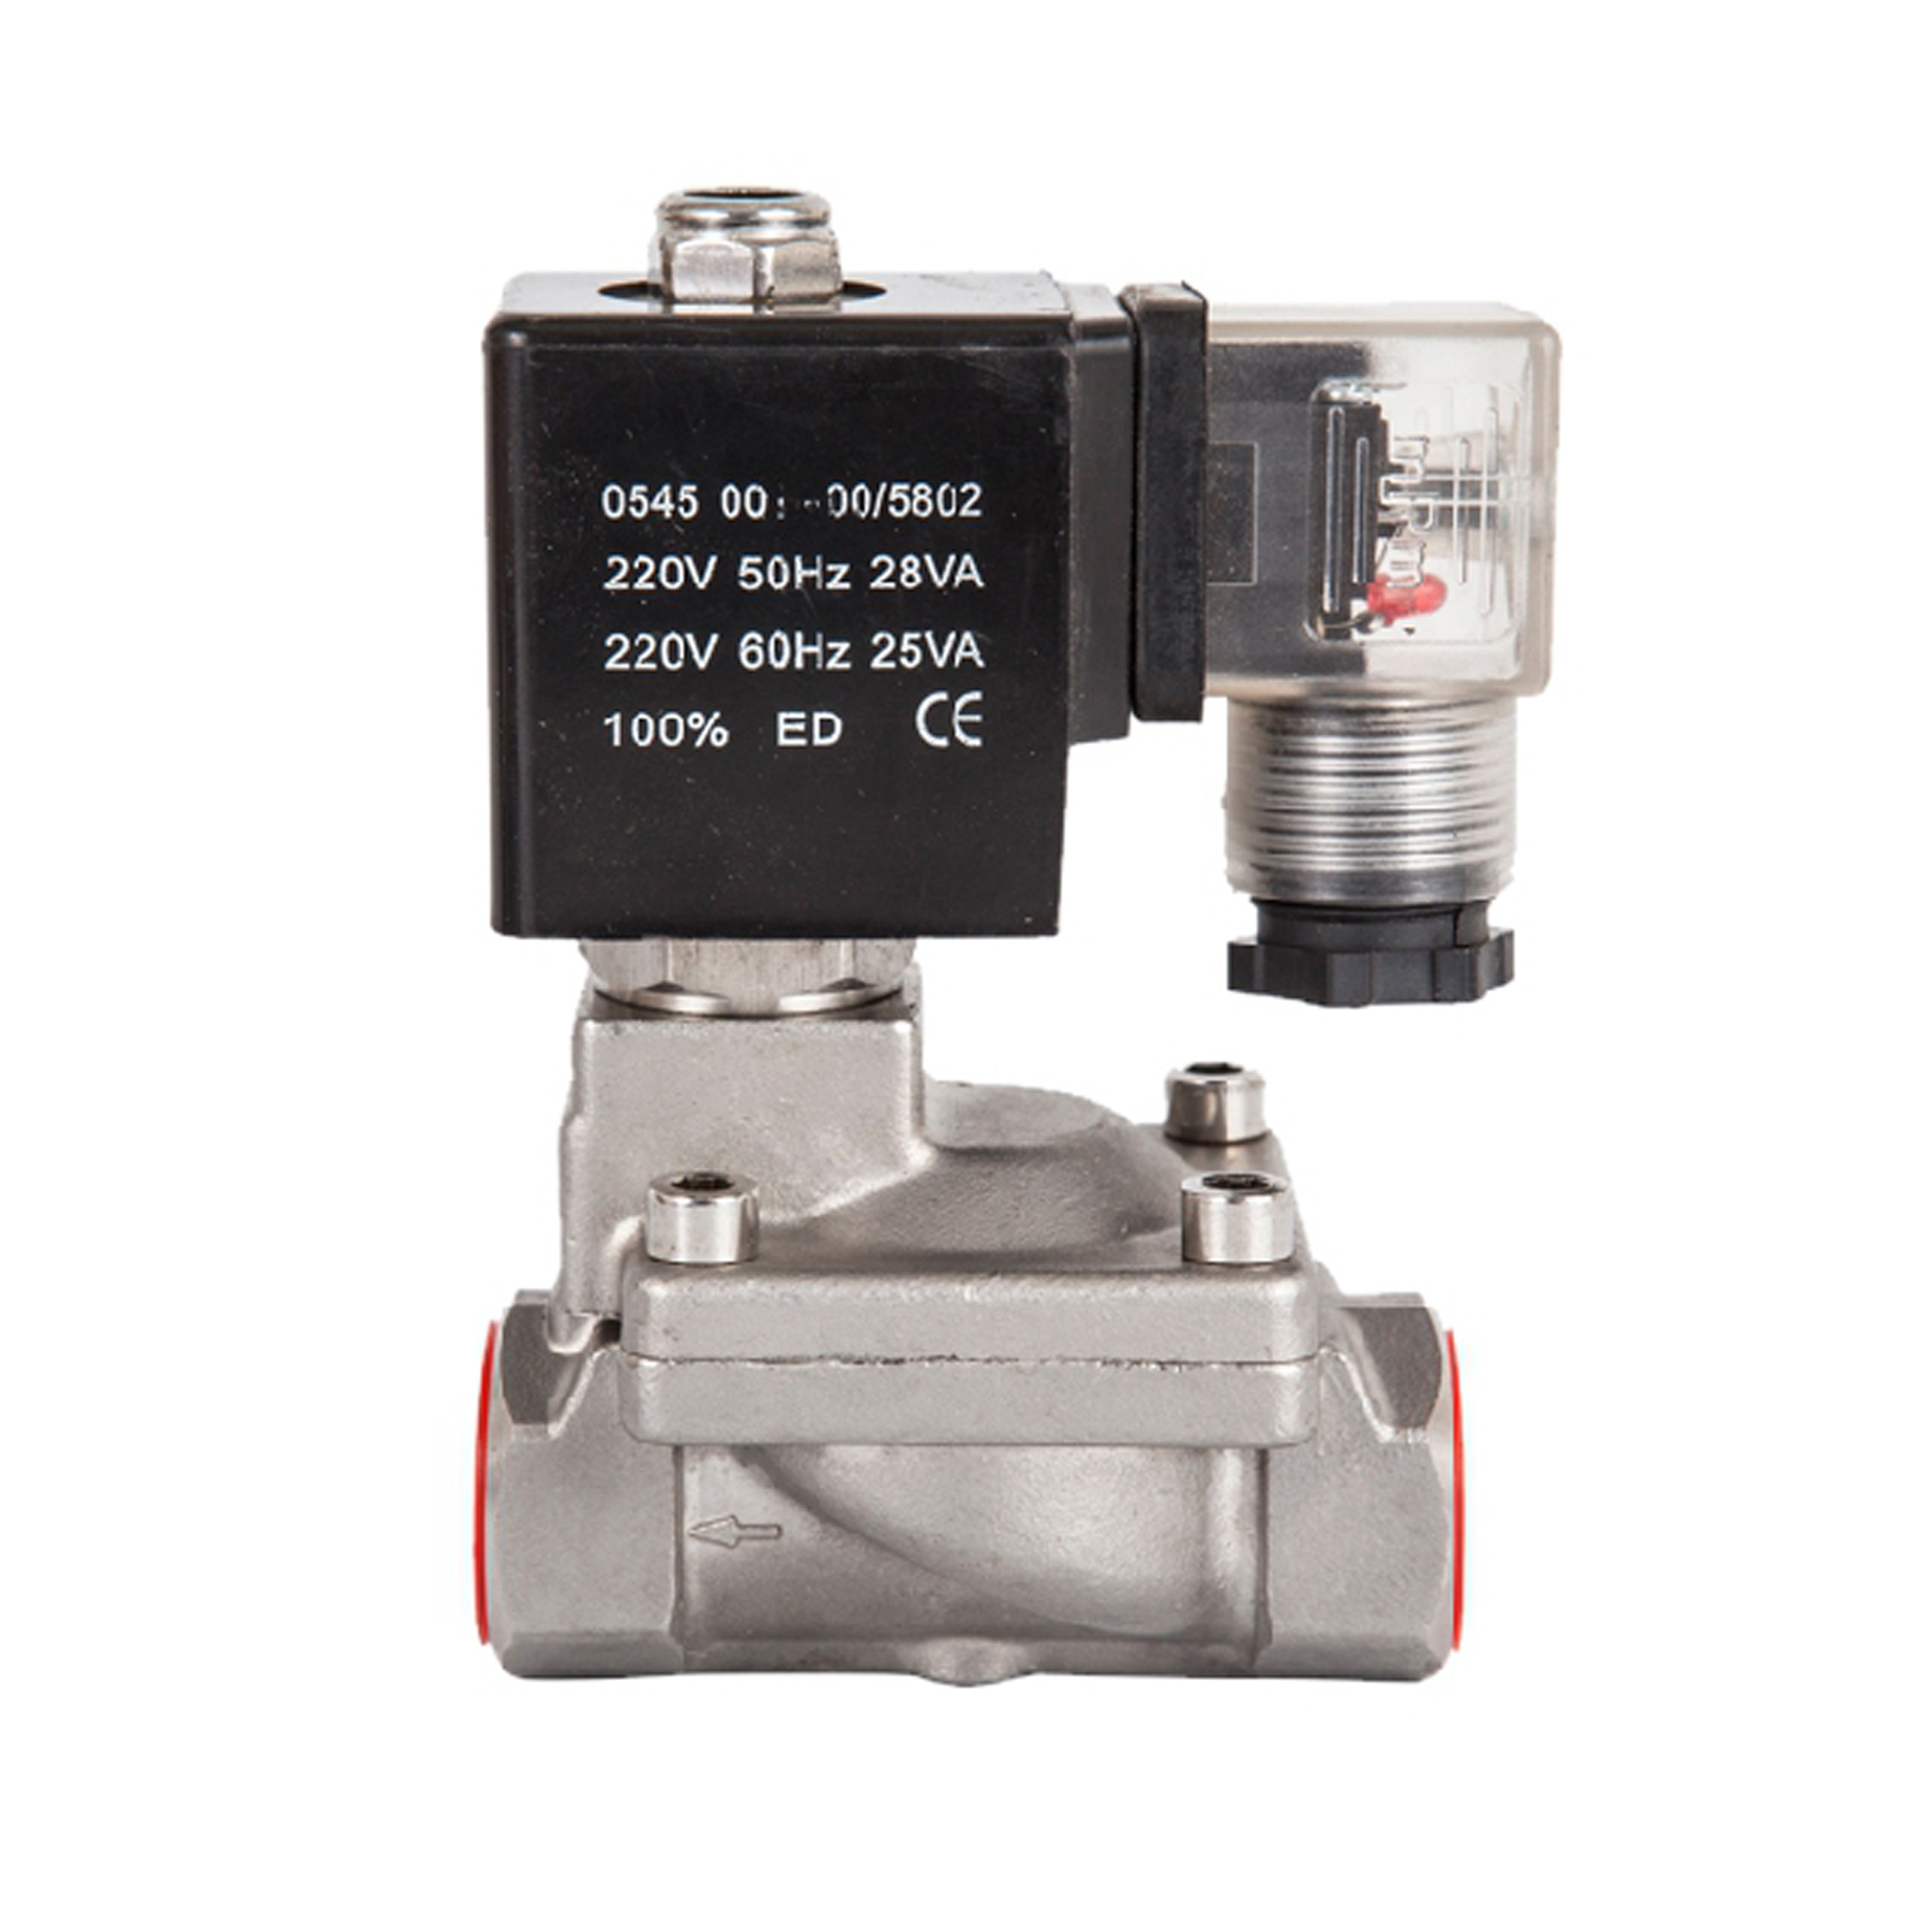 SLP series Stainless steel 16kg high pressure Pilot Diaphragm Solenoid Valve,N.C High temperature valves,110V 220V 380V 12V 24V